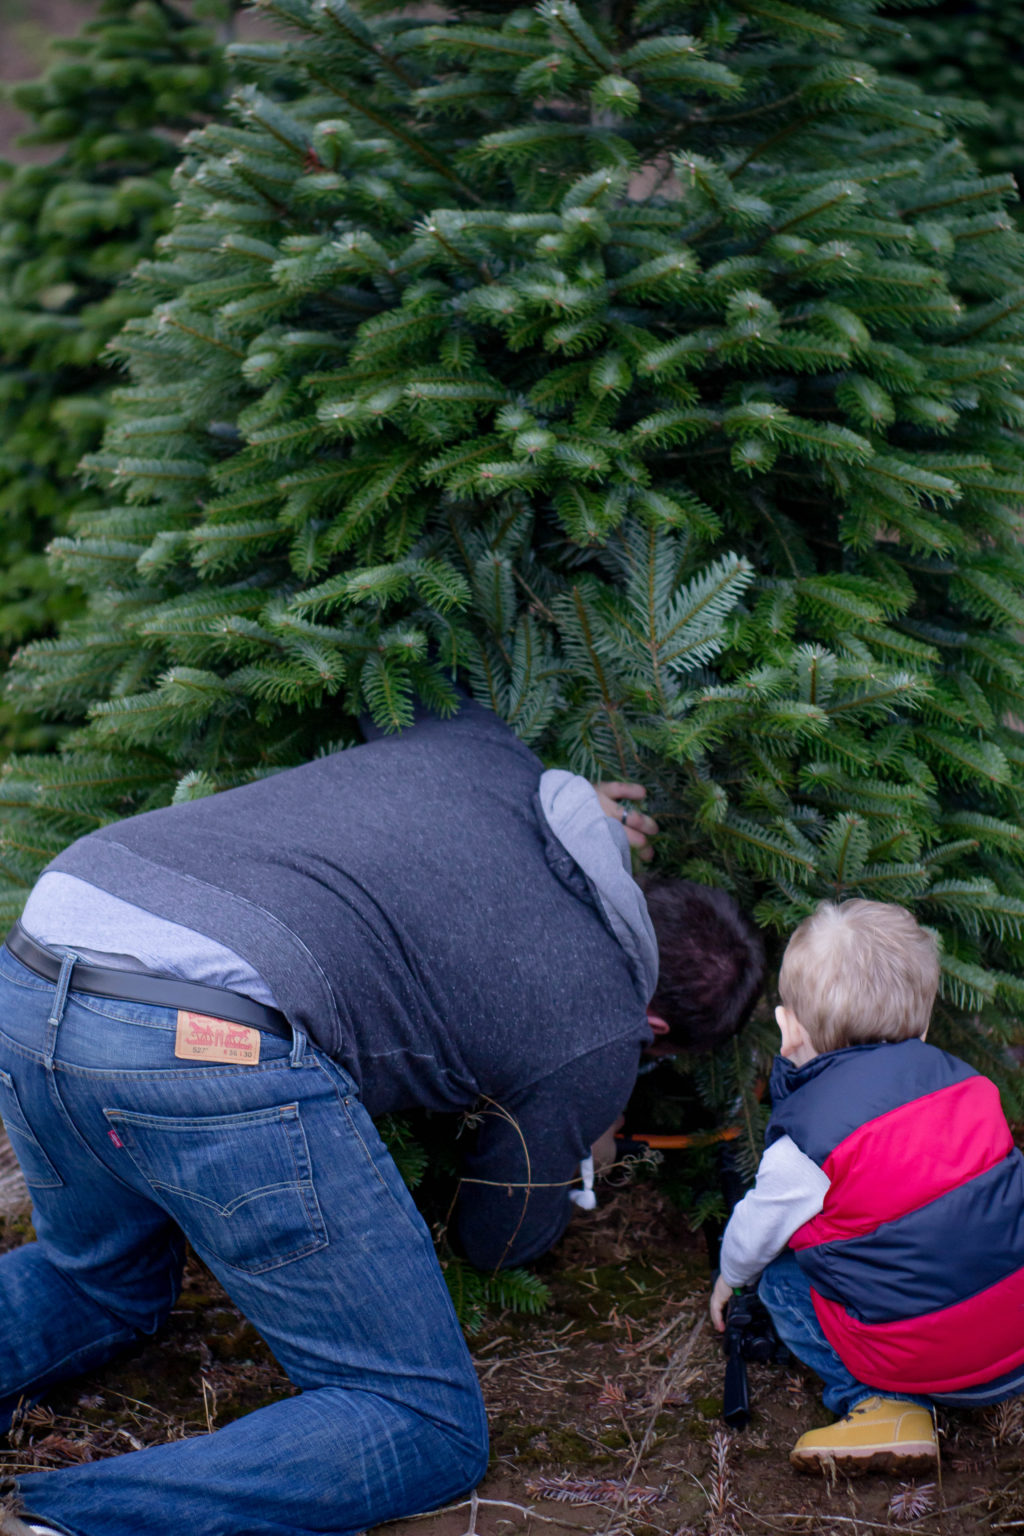 Finding your Christmas tree is a Christmas tradition for the whole family